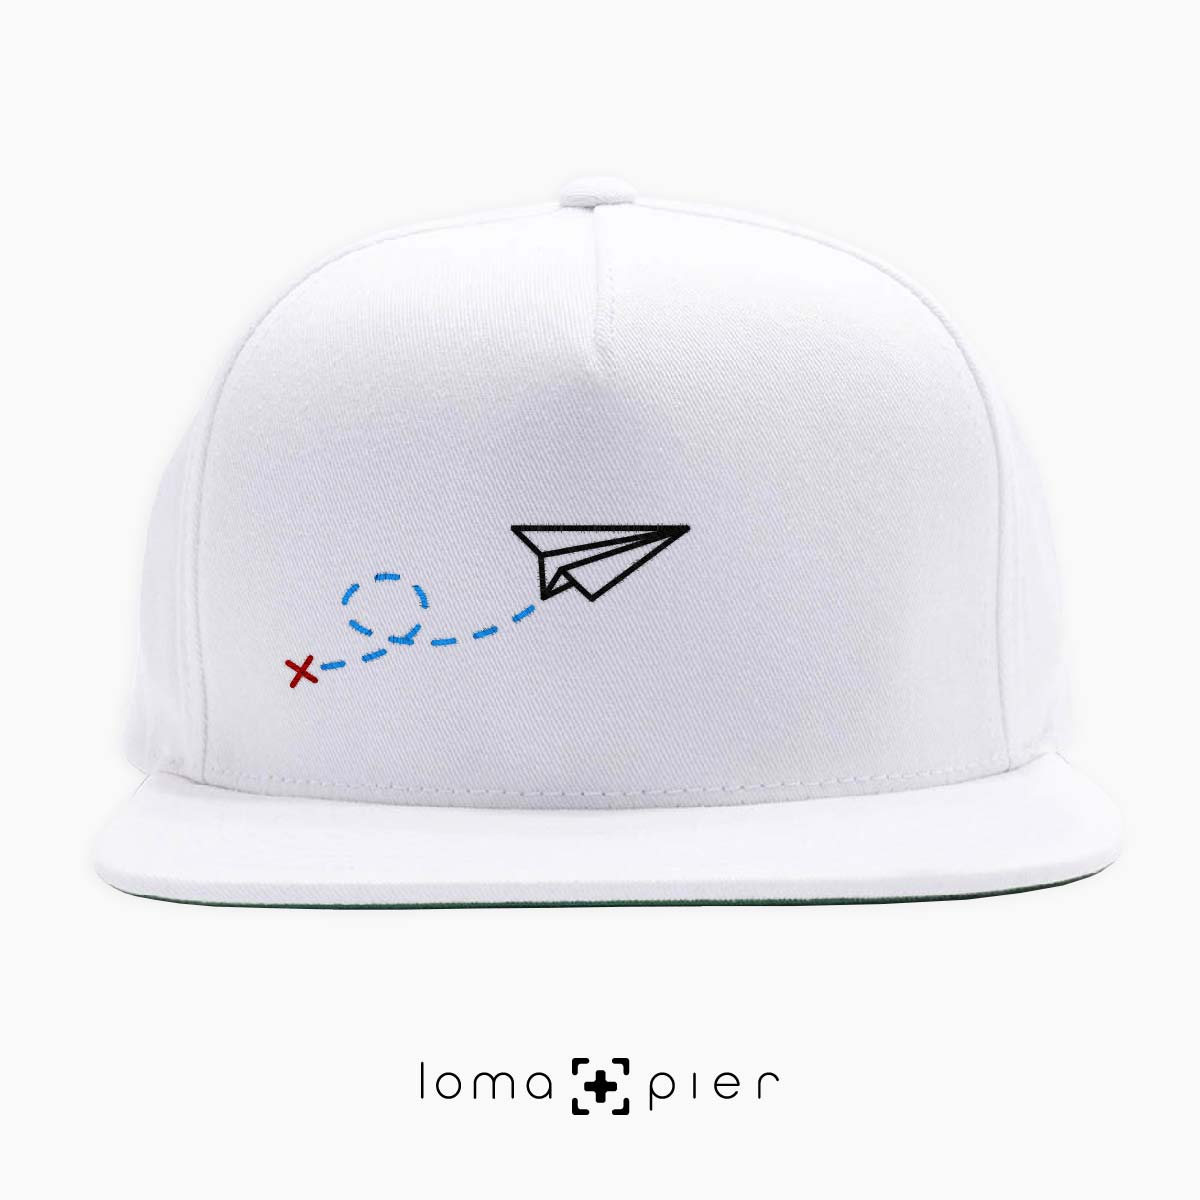 4efbeb4f PAPER AIRPLANE icon embroidered on a white classic snapback hat by loma+pier  hat store